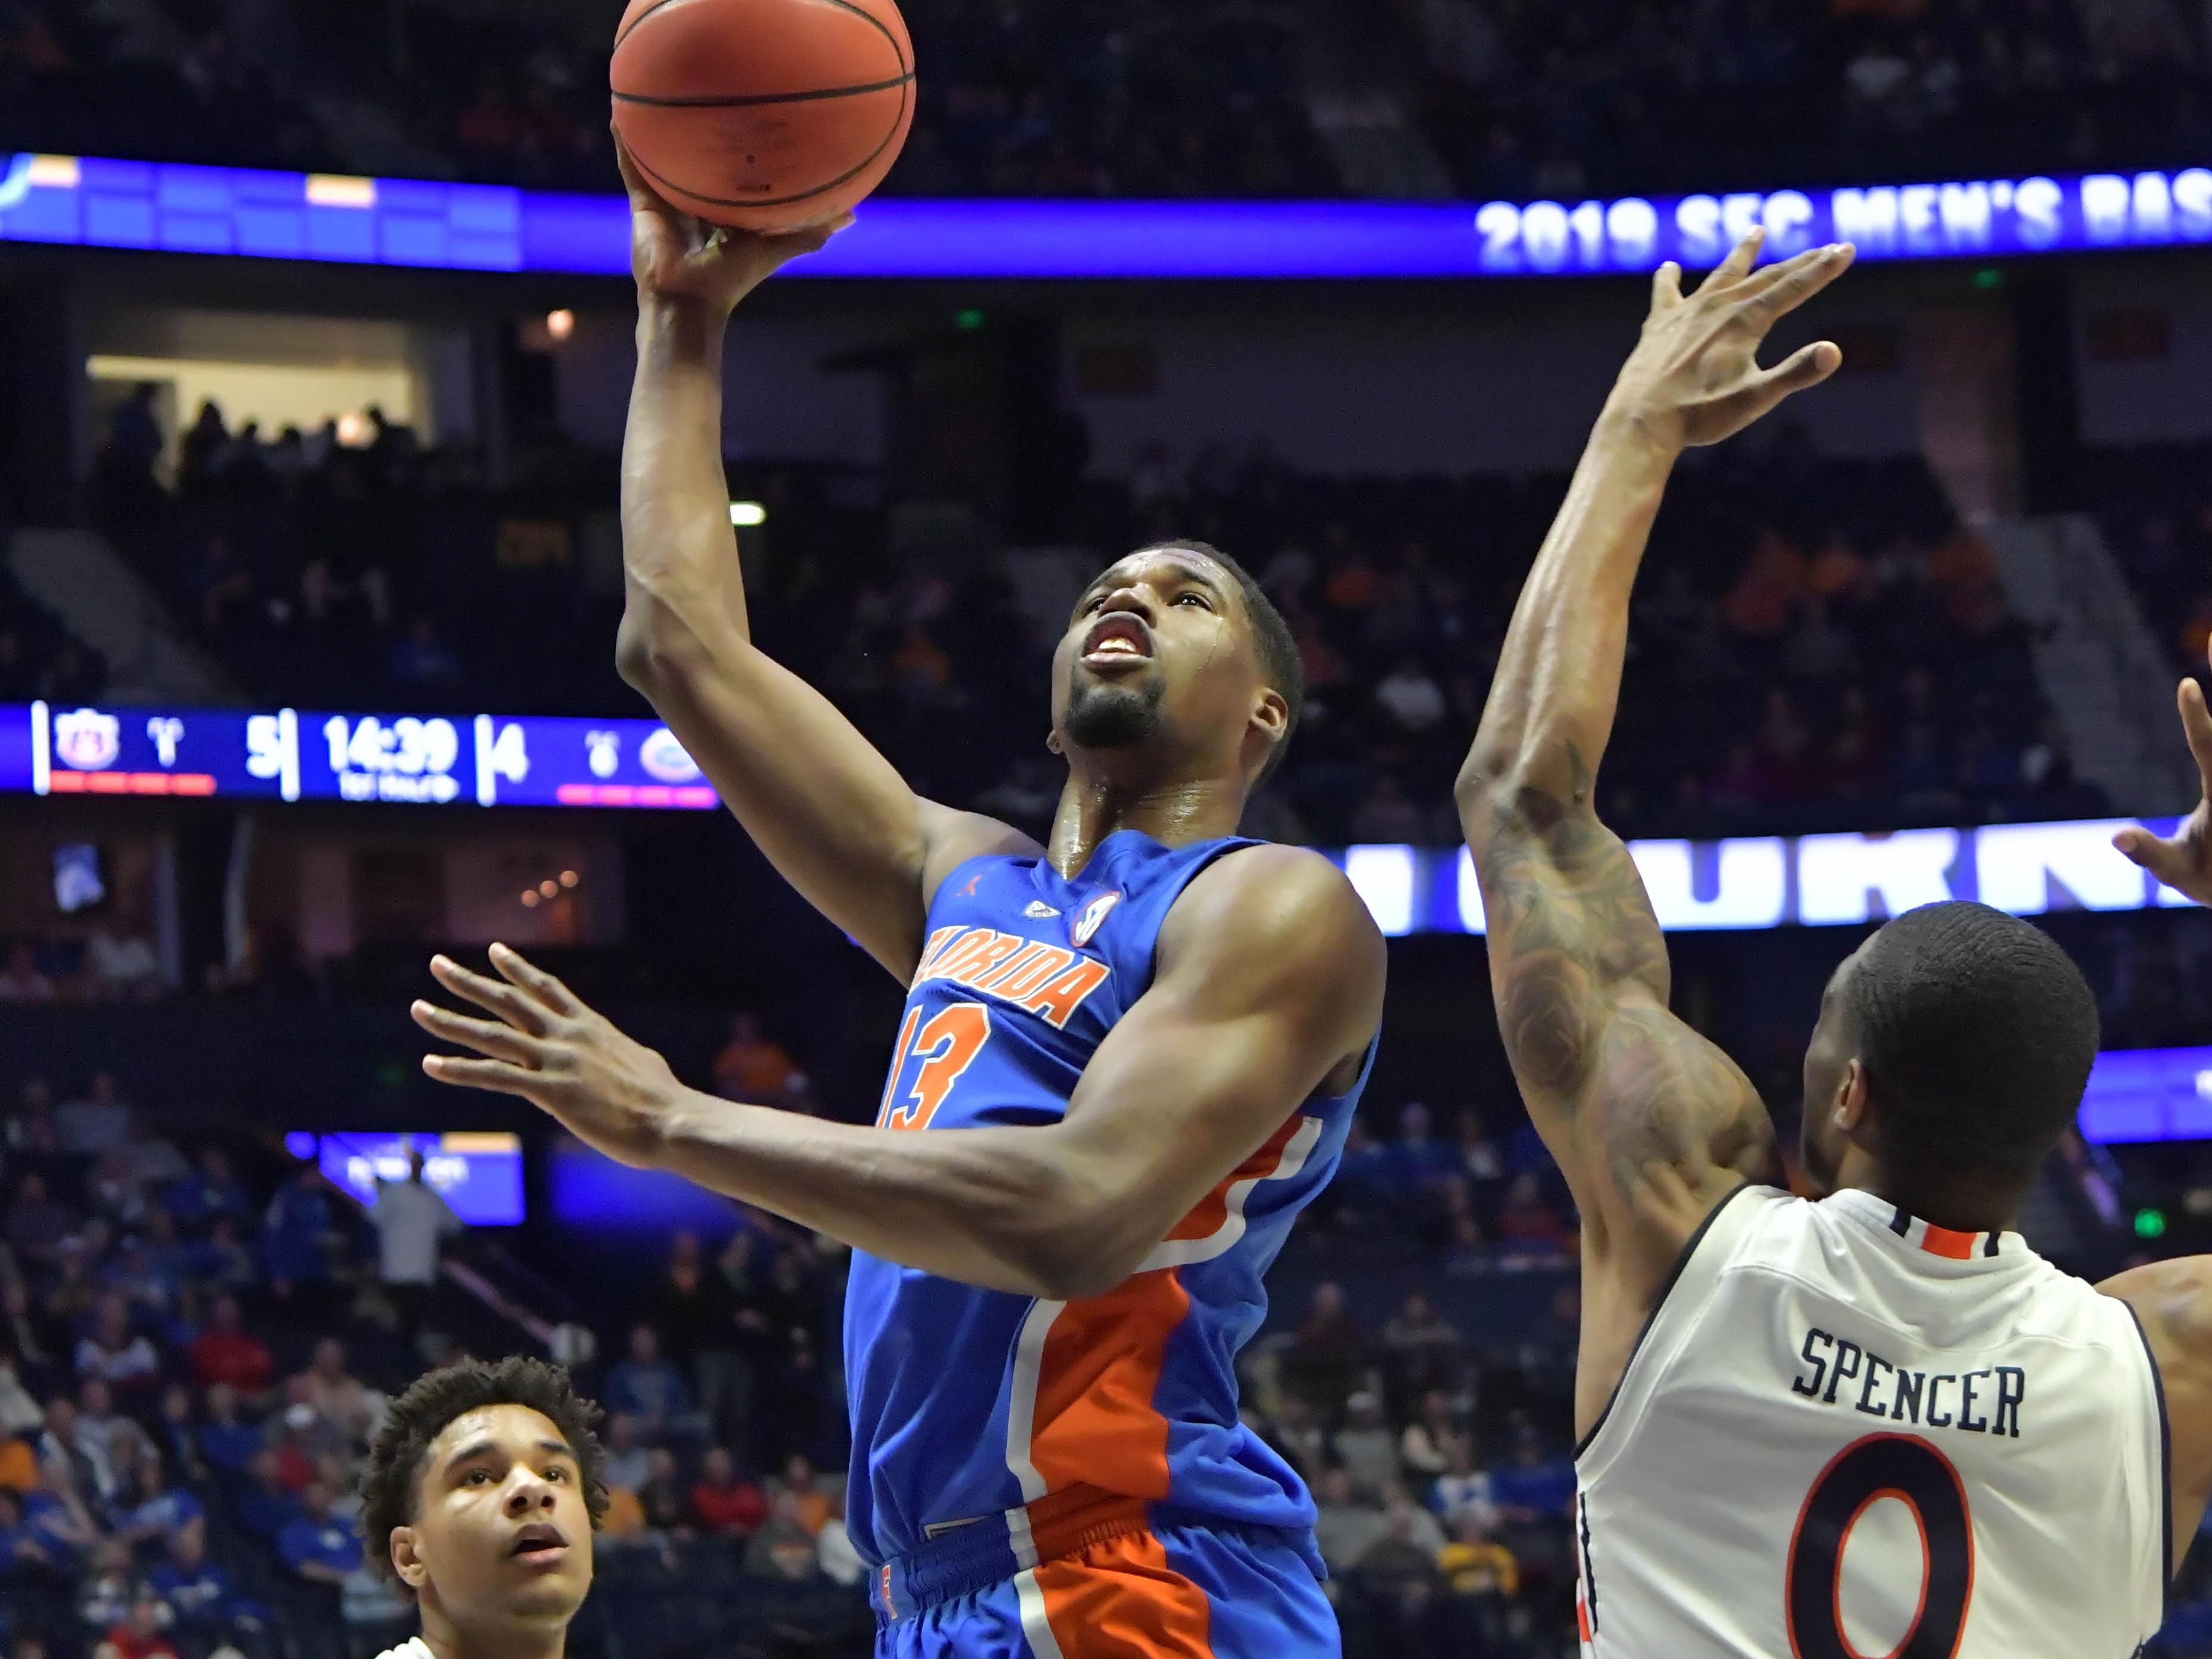 Mar 16, 2019; Nashville, TN, USA; Florida Gators center Kevarrius Hayes (13) shoots againstAuburn Tigers forward Horace Spencer (0) during the first half of game eleven in the SEC conference tournament at Bridgestone Arena. Mandatory Credit: Jim Brown-USA TODAY Sports